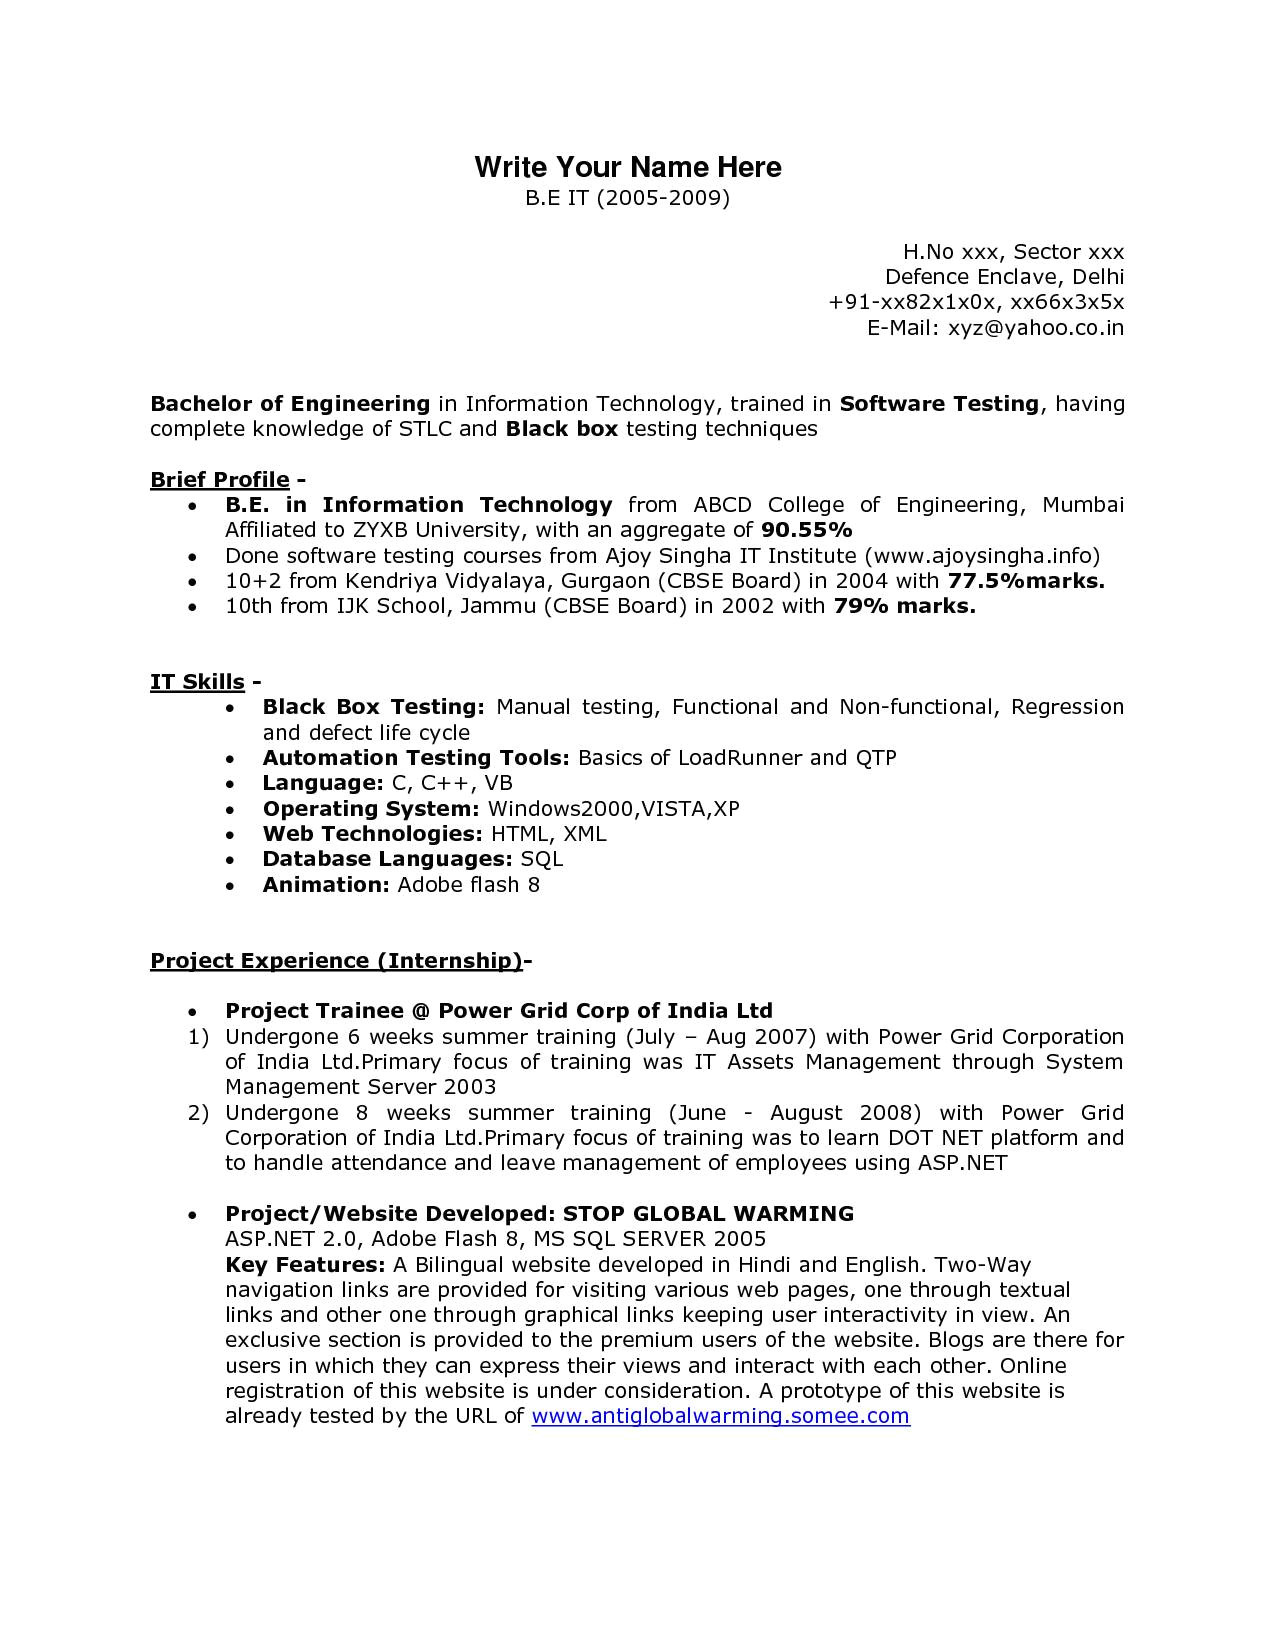 sample resume for c net developer fresh interesting resume dot net developer fresher in software testing